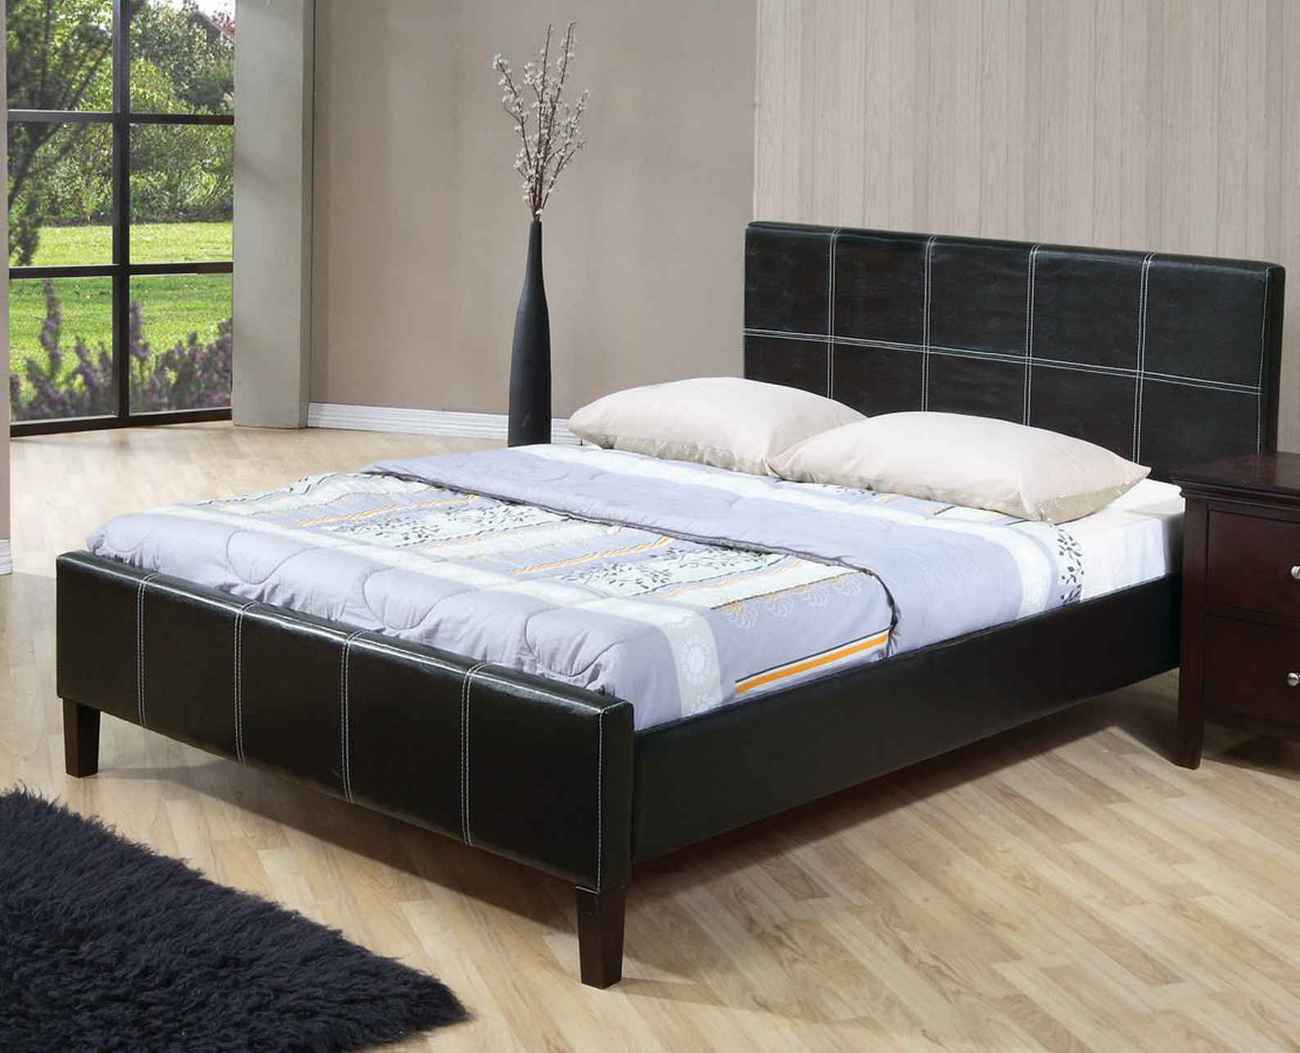 Discount Beds Cheap Queen Size Beds And Mattresses